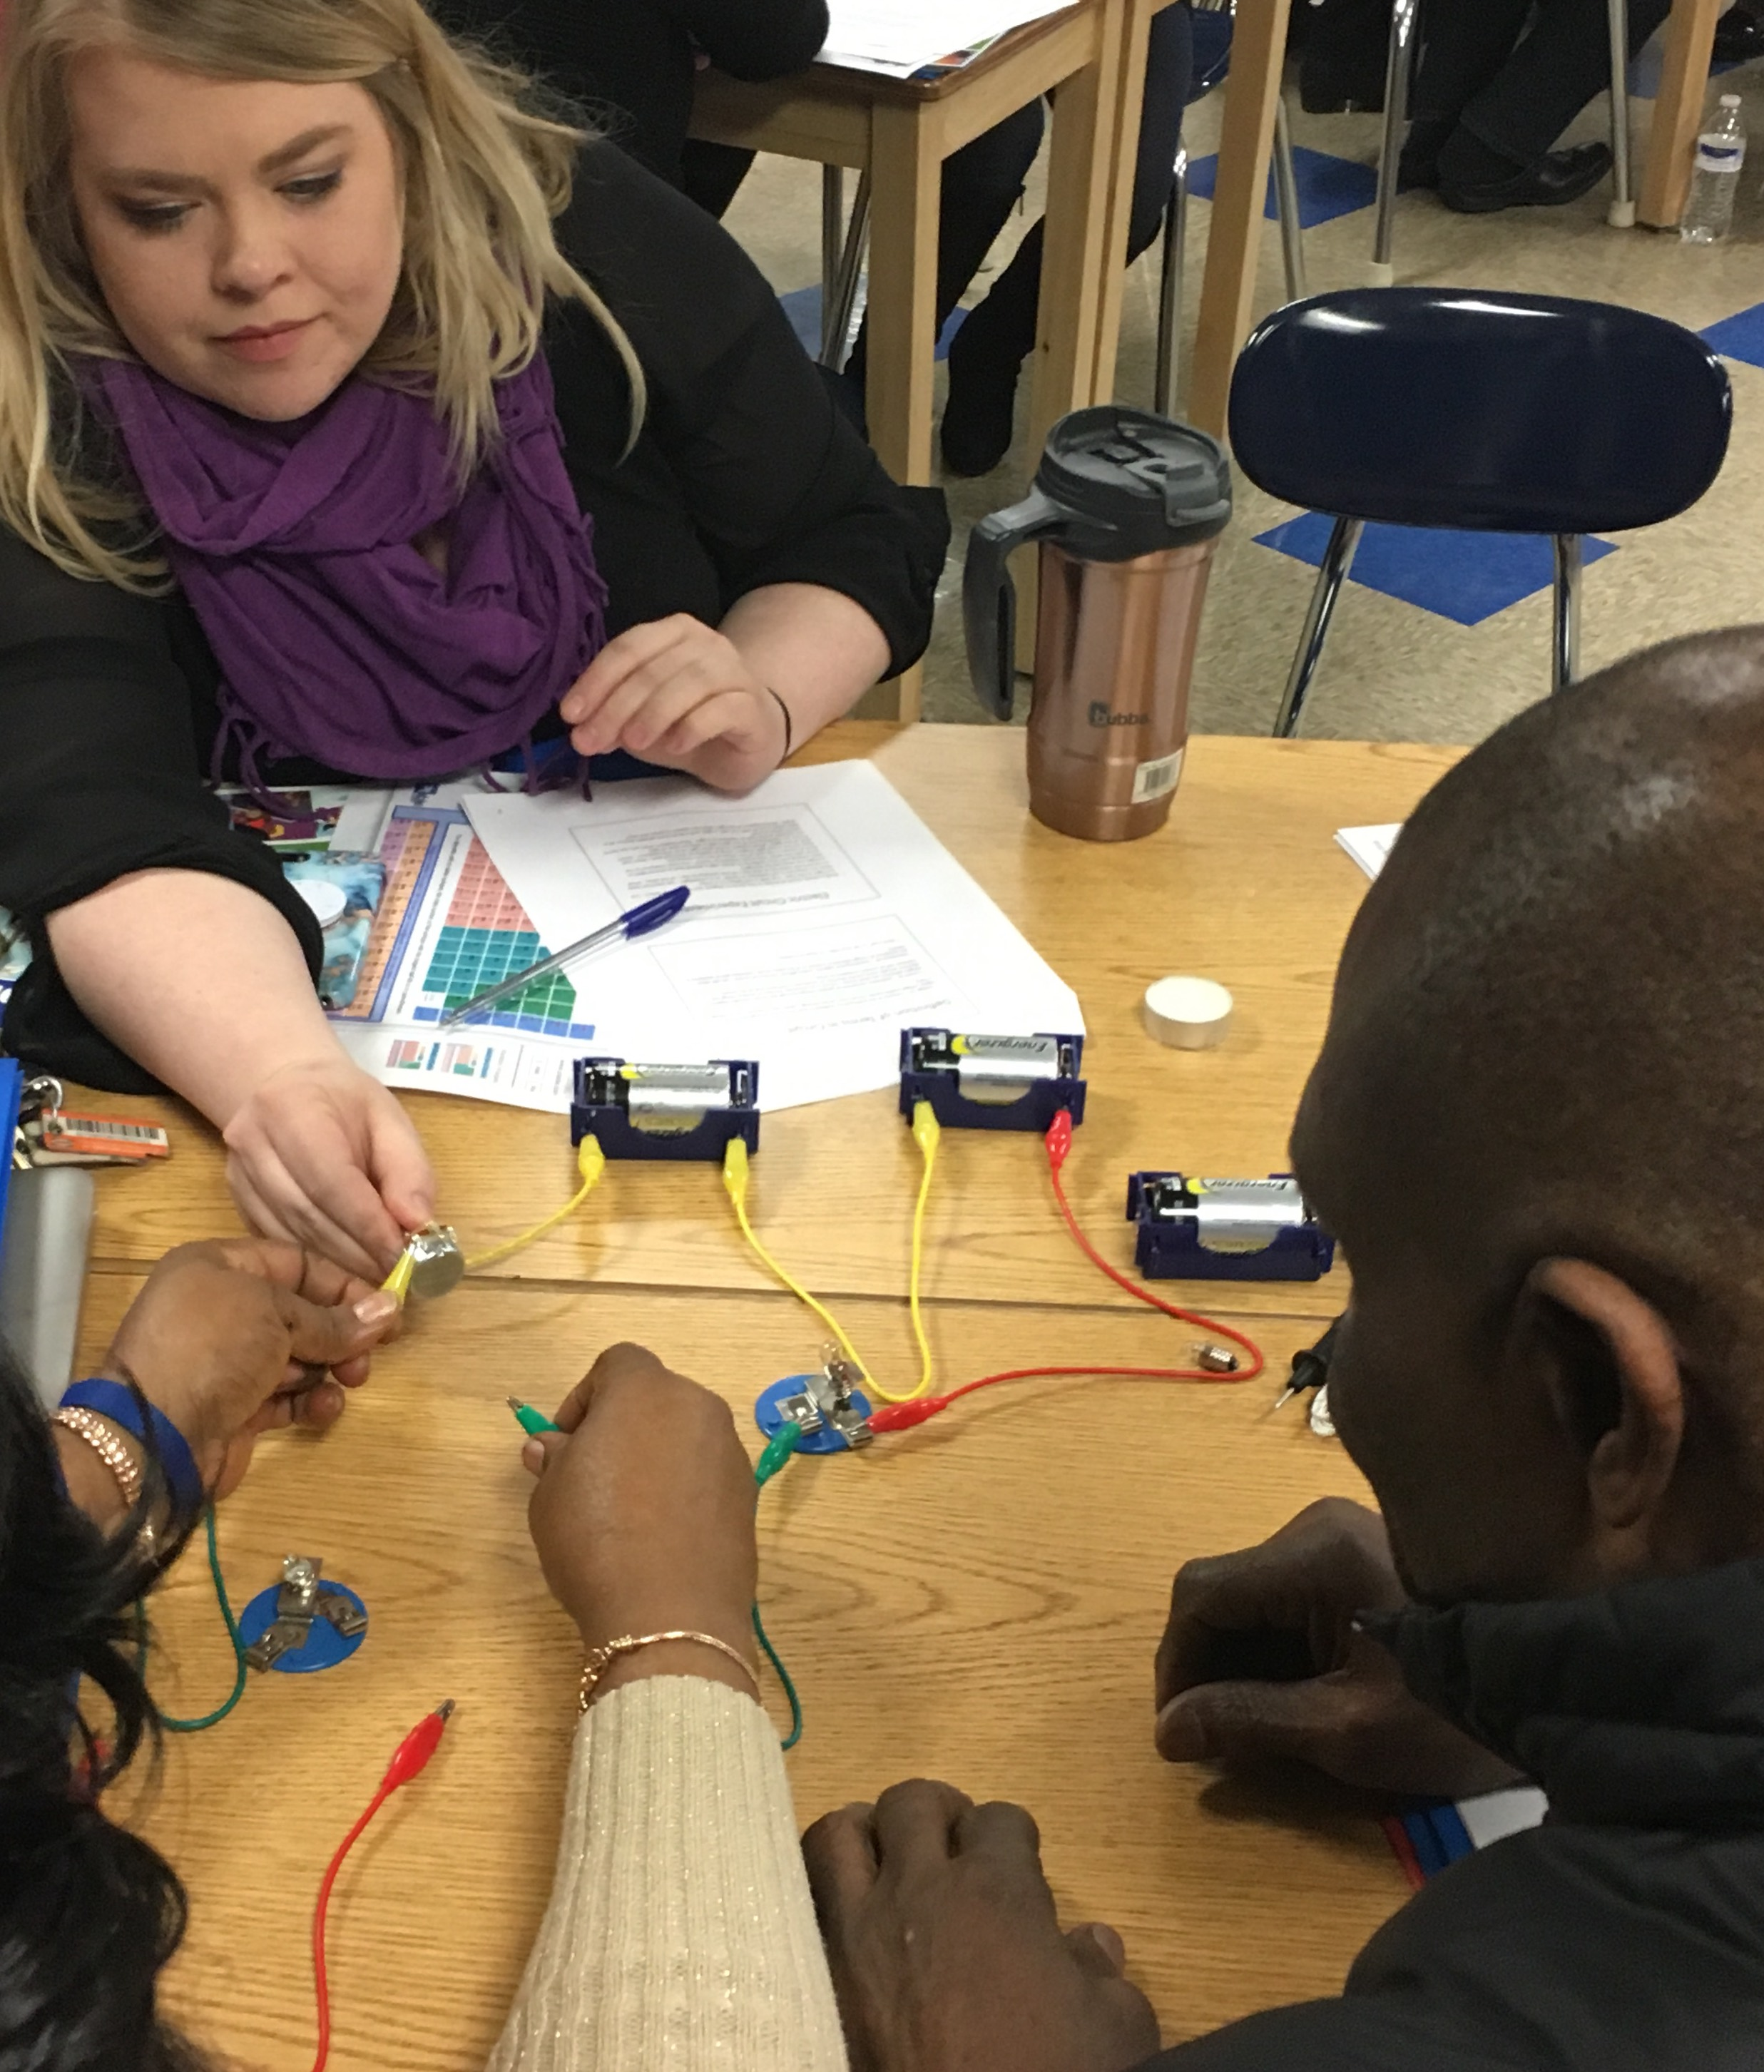 Our Vision - We aspire to provide effective, affordable educator training and outreach to make the engineering and applied science fields accessible and possible for all members of the K-12 community.Learn more about why this matters ...